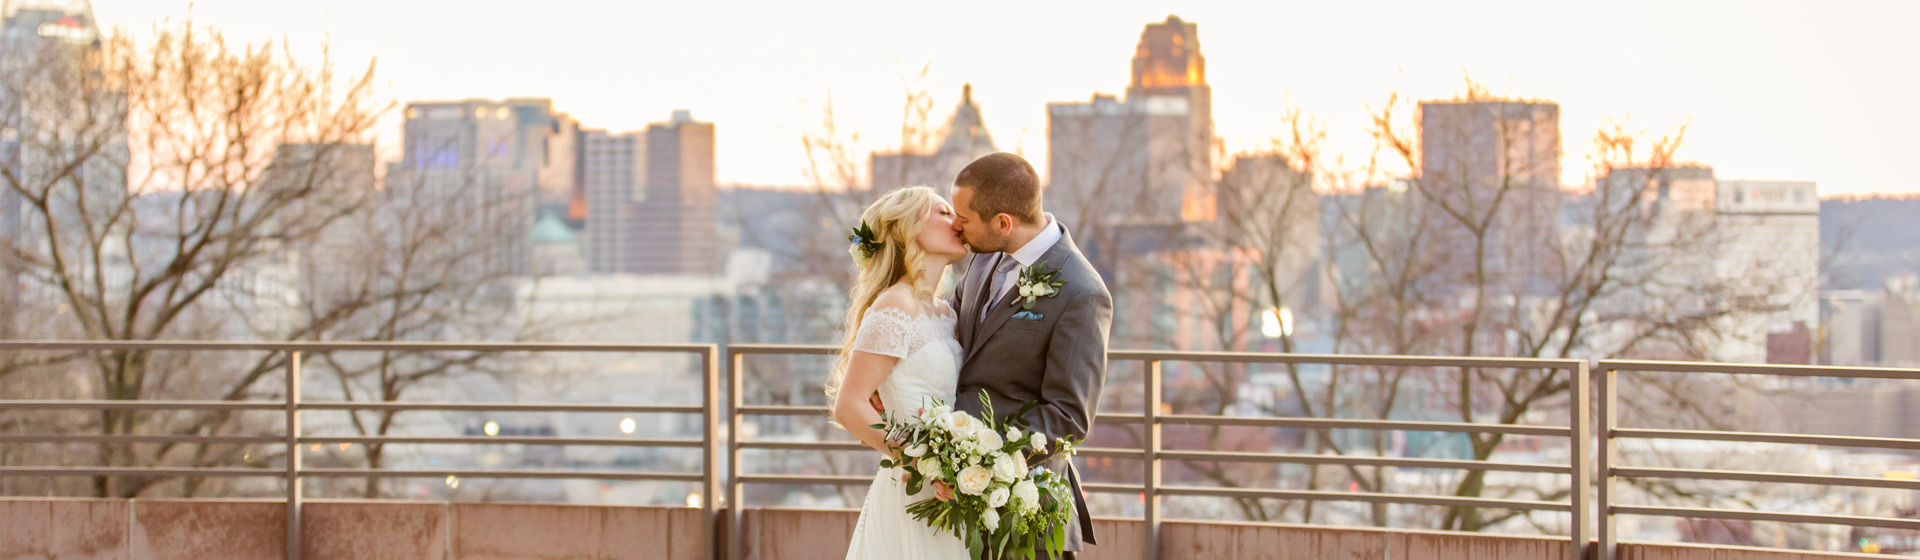 Bride and groom kissing at sunset with the Cincinnati skyline in the background